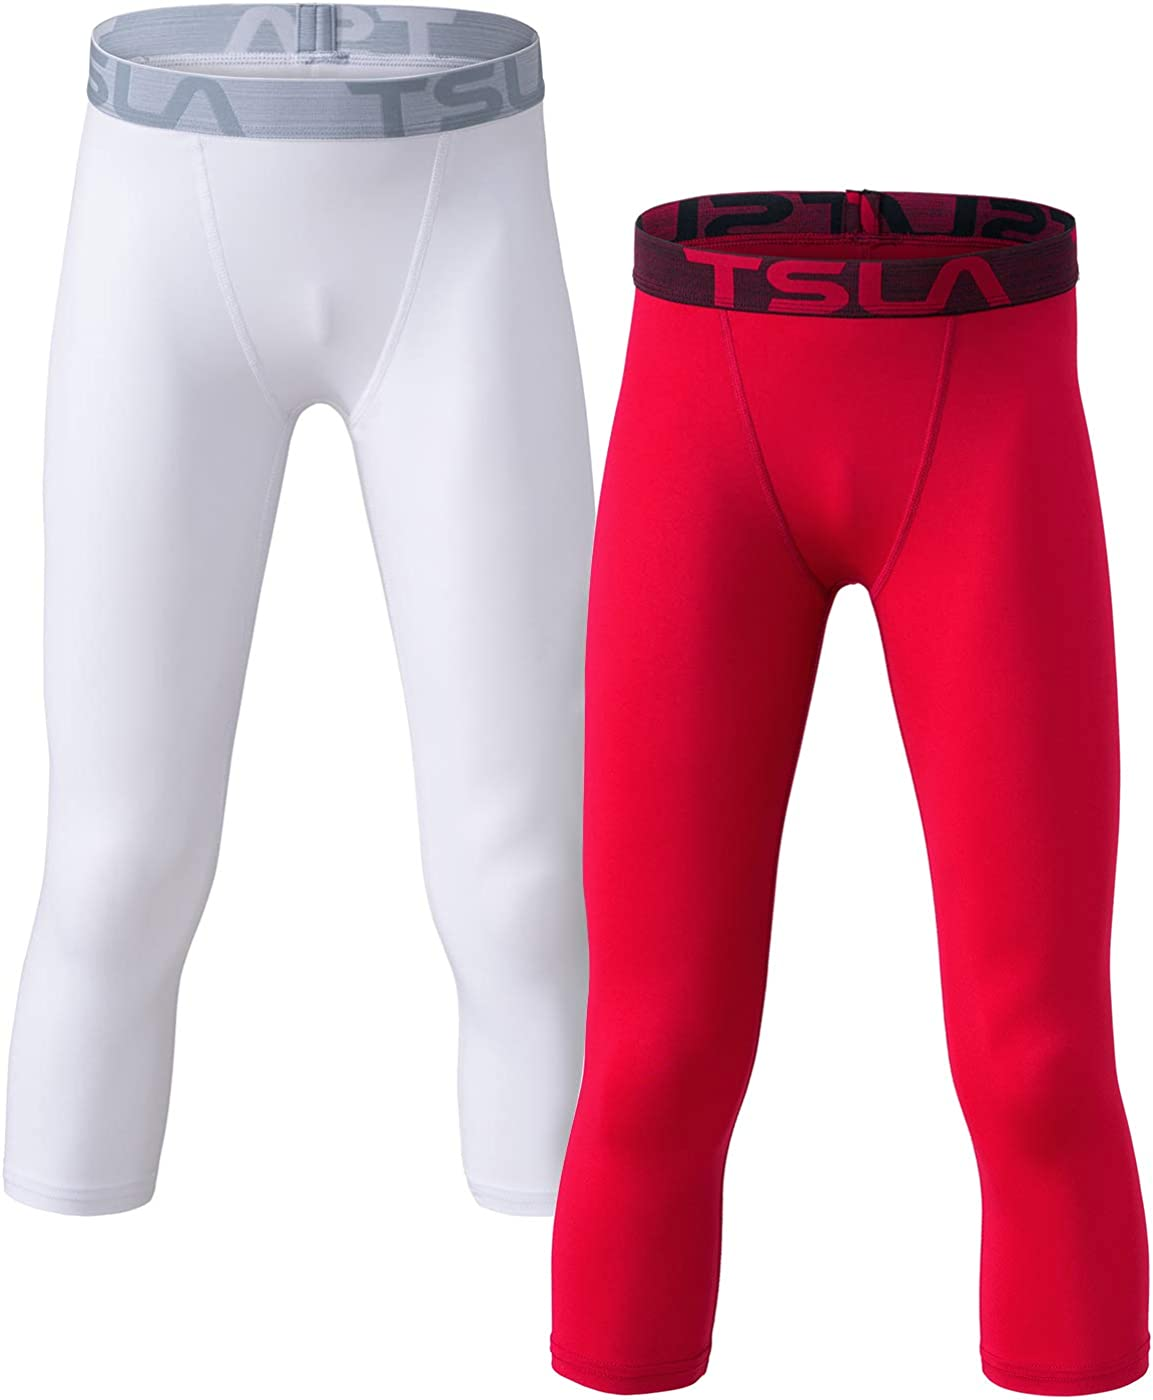 TSLA 1 or 2 Pack Boys Youth UPF 50+ Compression Pants Baselayer, Cool Dry Active Running Tights, Sports 4-Way Stretch Workout Leggings: Clothing